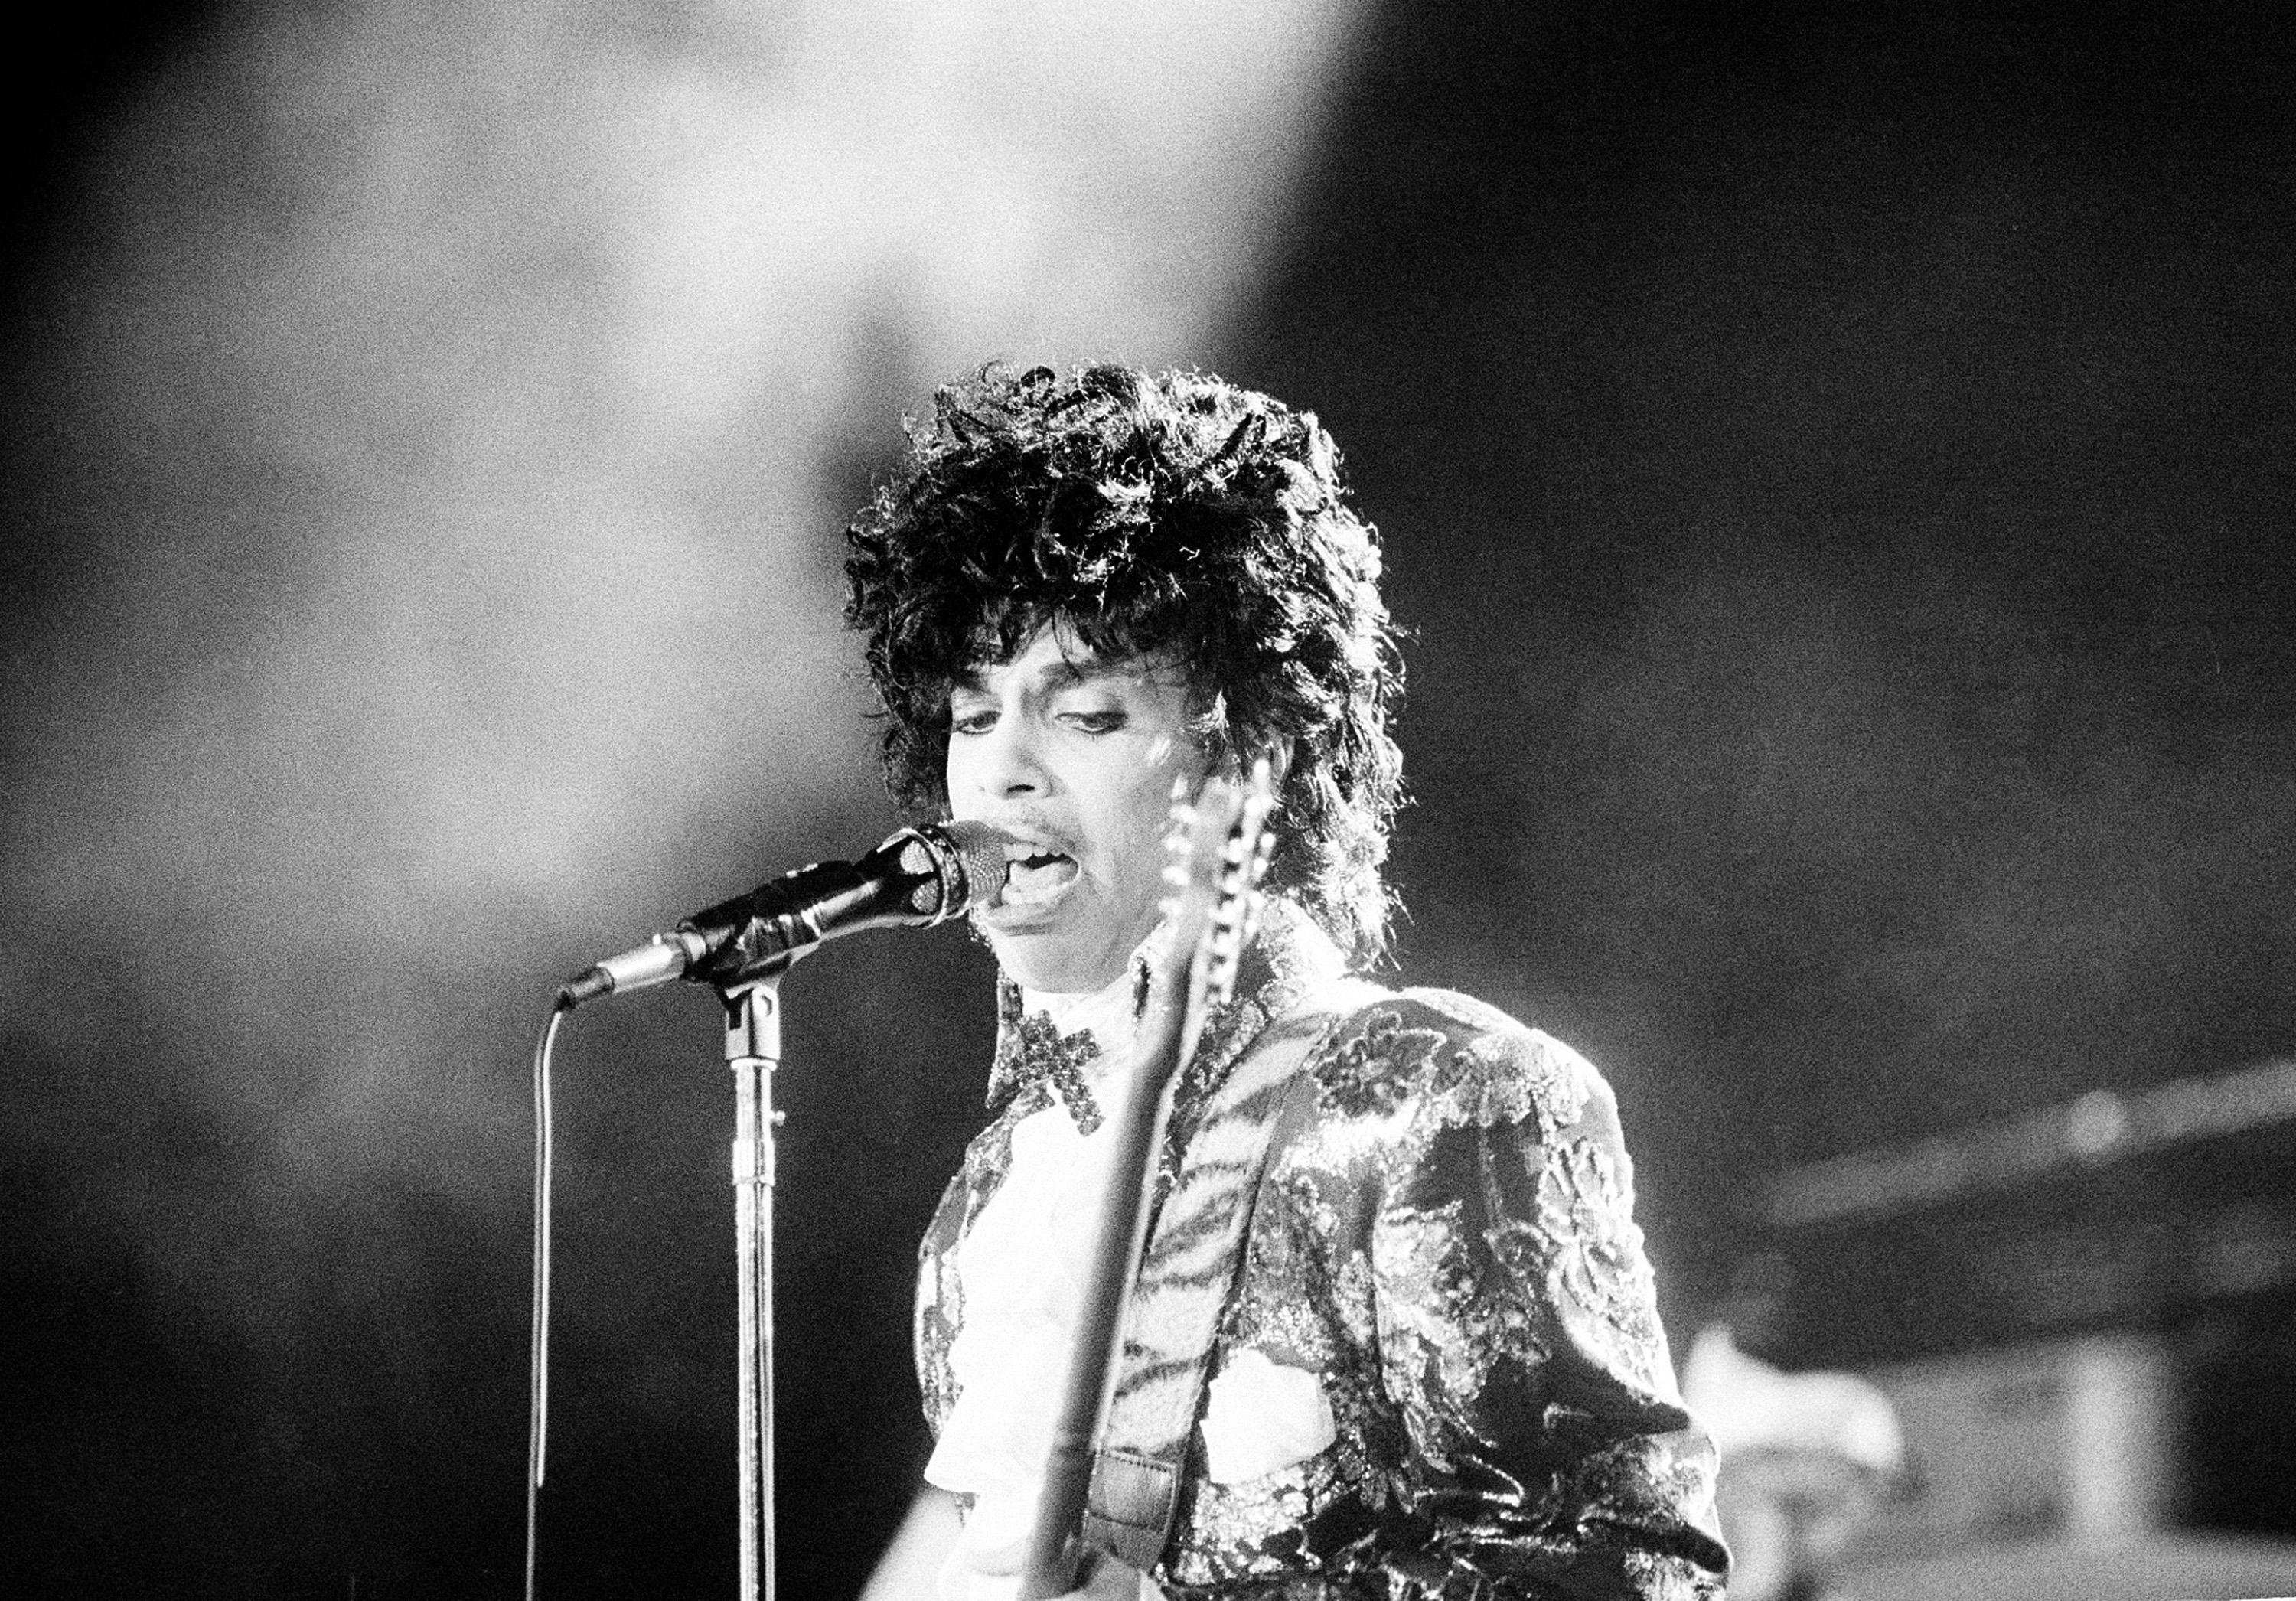 Police Investigating Prince's Death Are Focusing on Painkillers